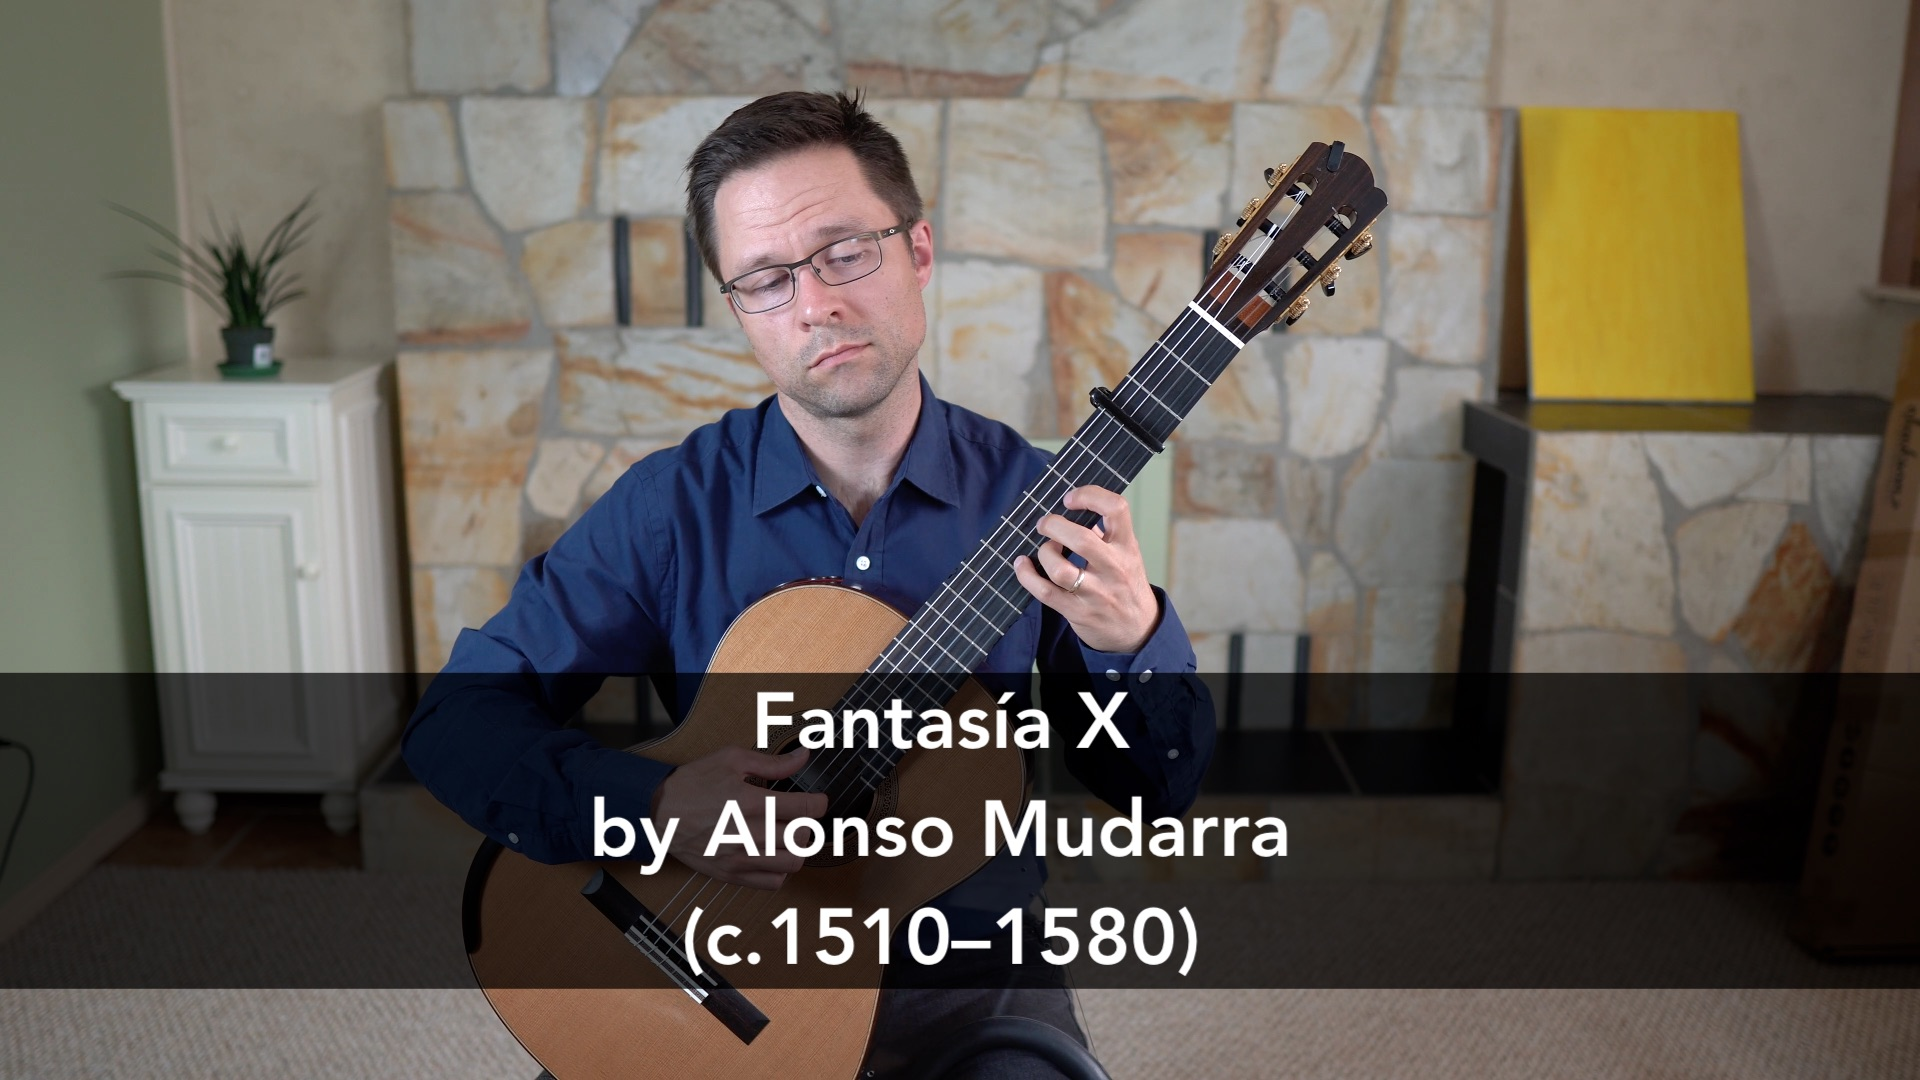 Fantasia X by Mudarra for Guitar - Sheet Music or Tab